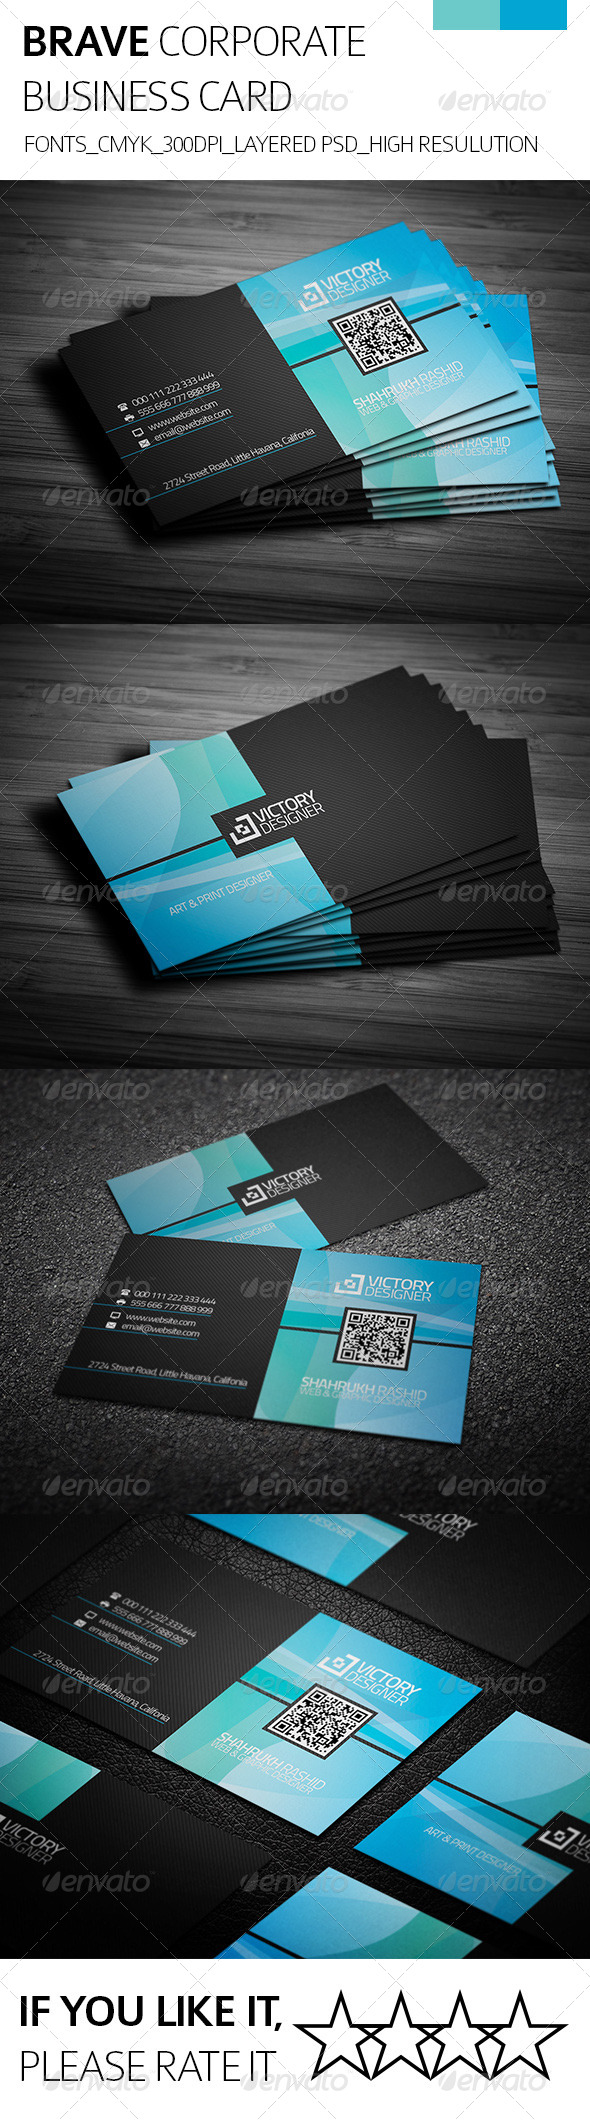 GraphicRiver Brave & Corporate Business Card 8112672